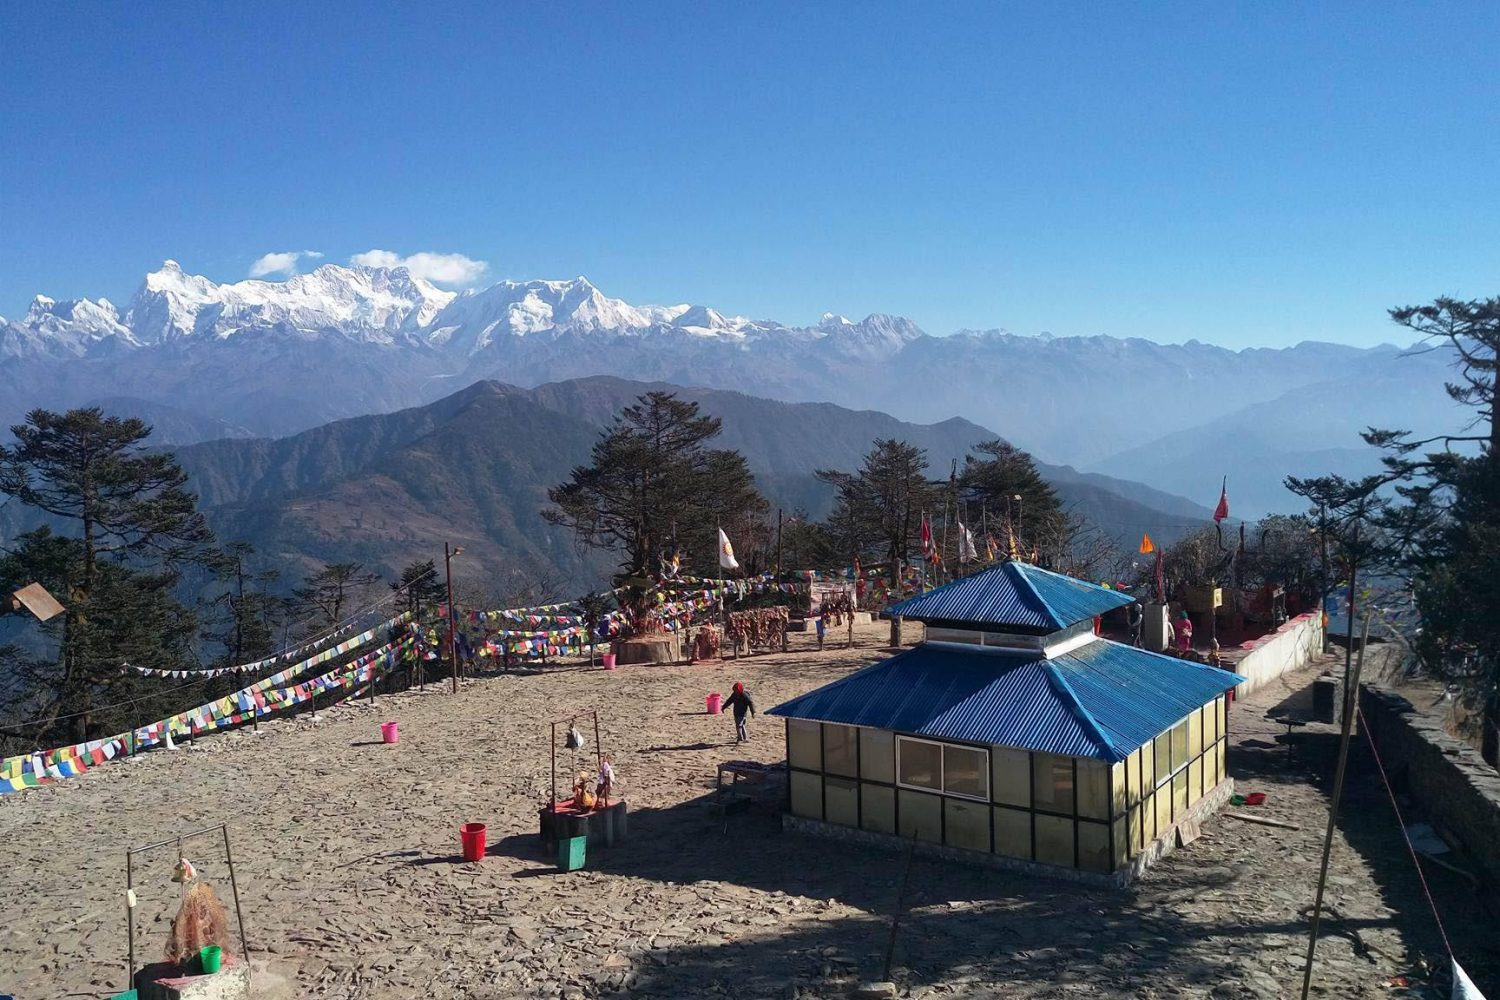 Pathibara temple with Kanchenjunga in the background